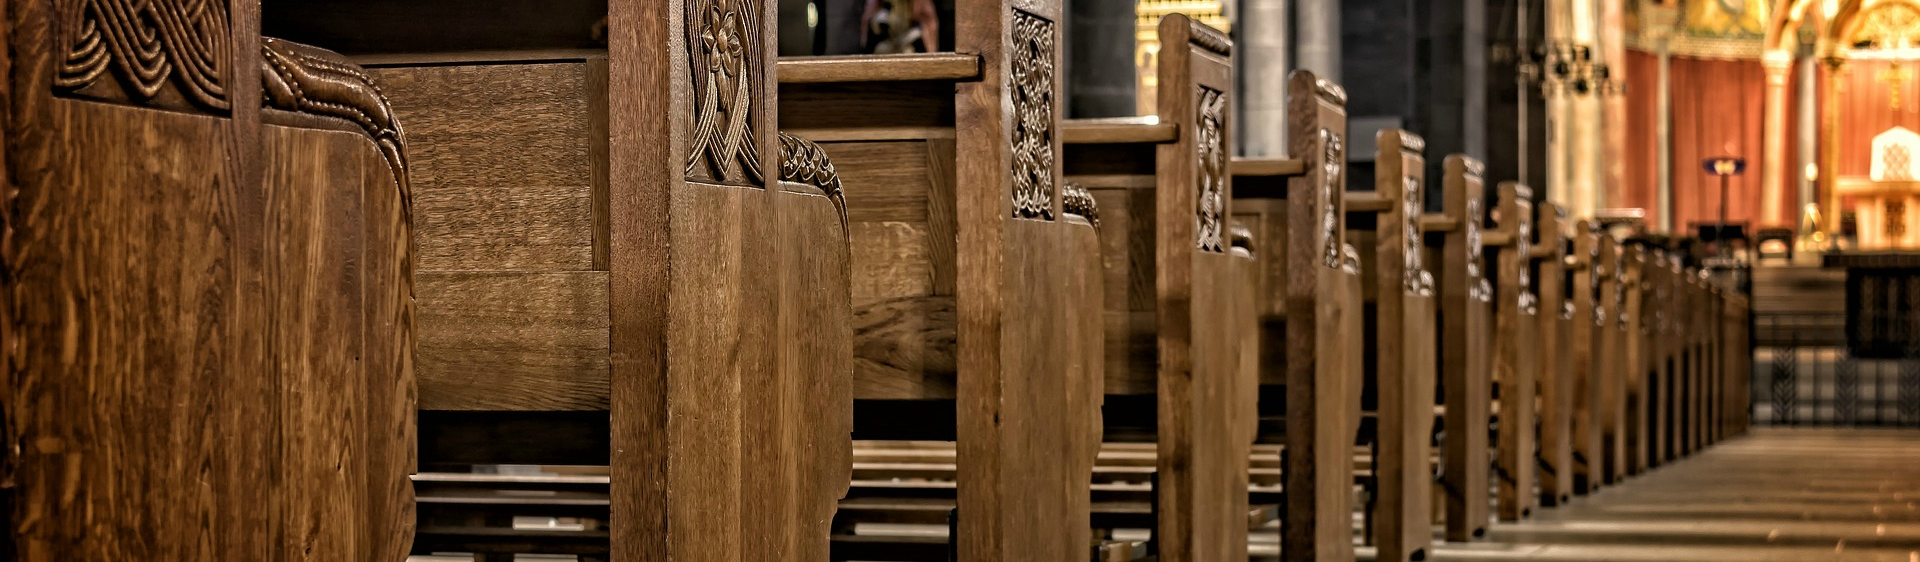 Church Cleaning Services : Church cleaning services with the power of steam by